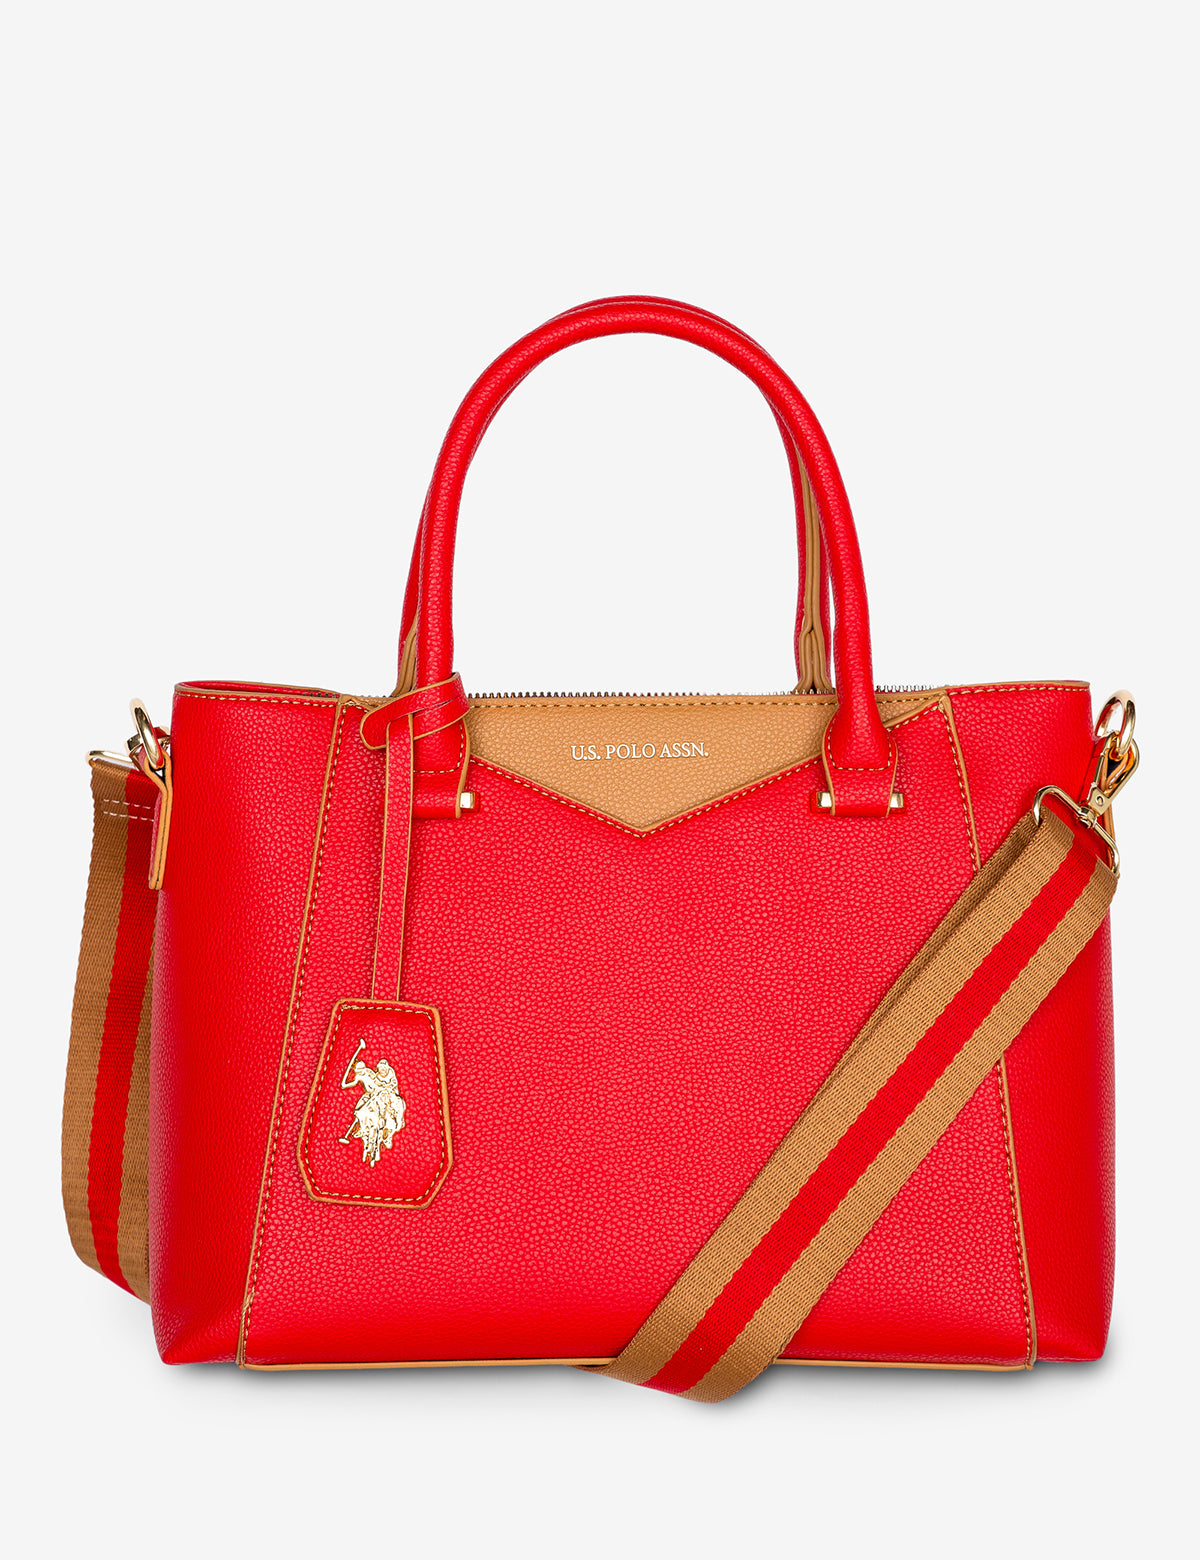 ENVELOPE STITCH TOTE BAG - U.S. Polo Assn.